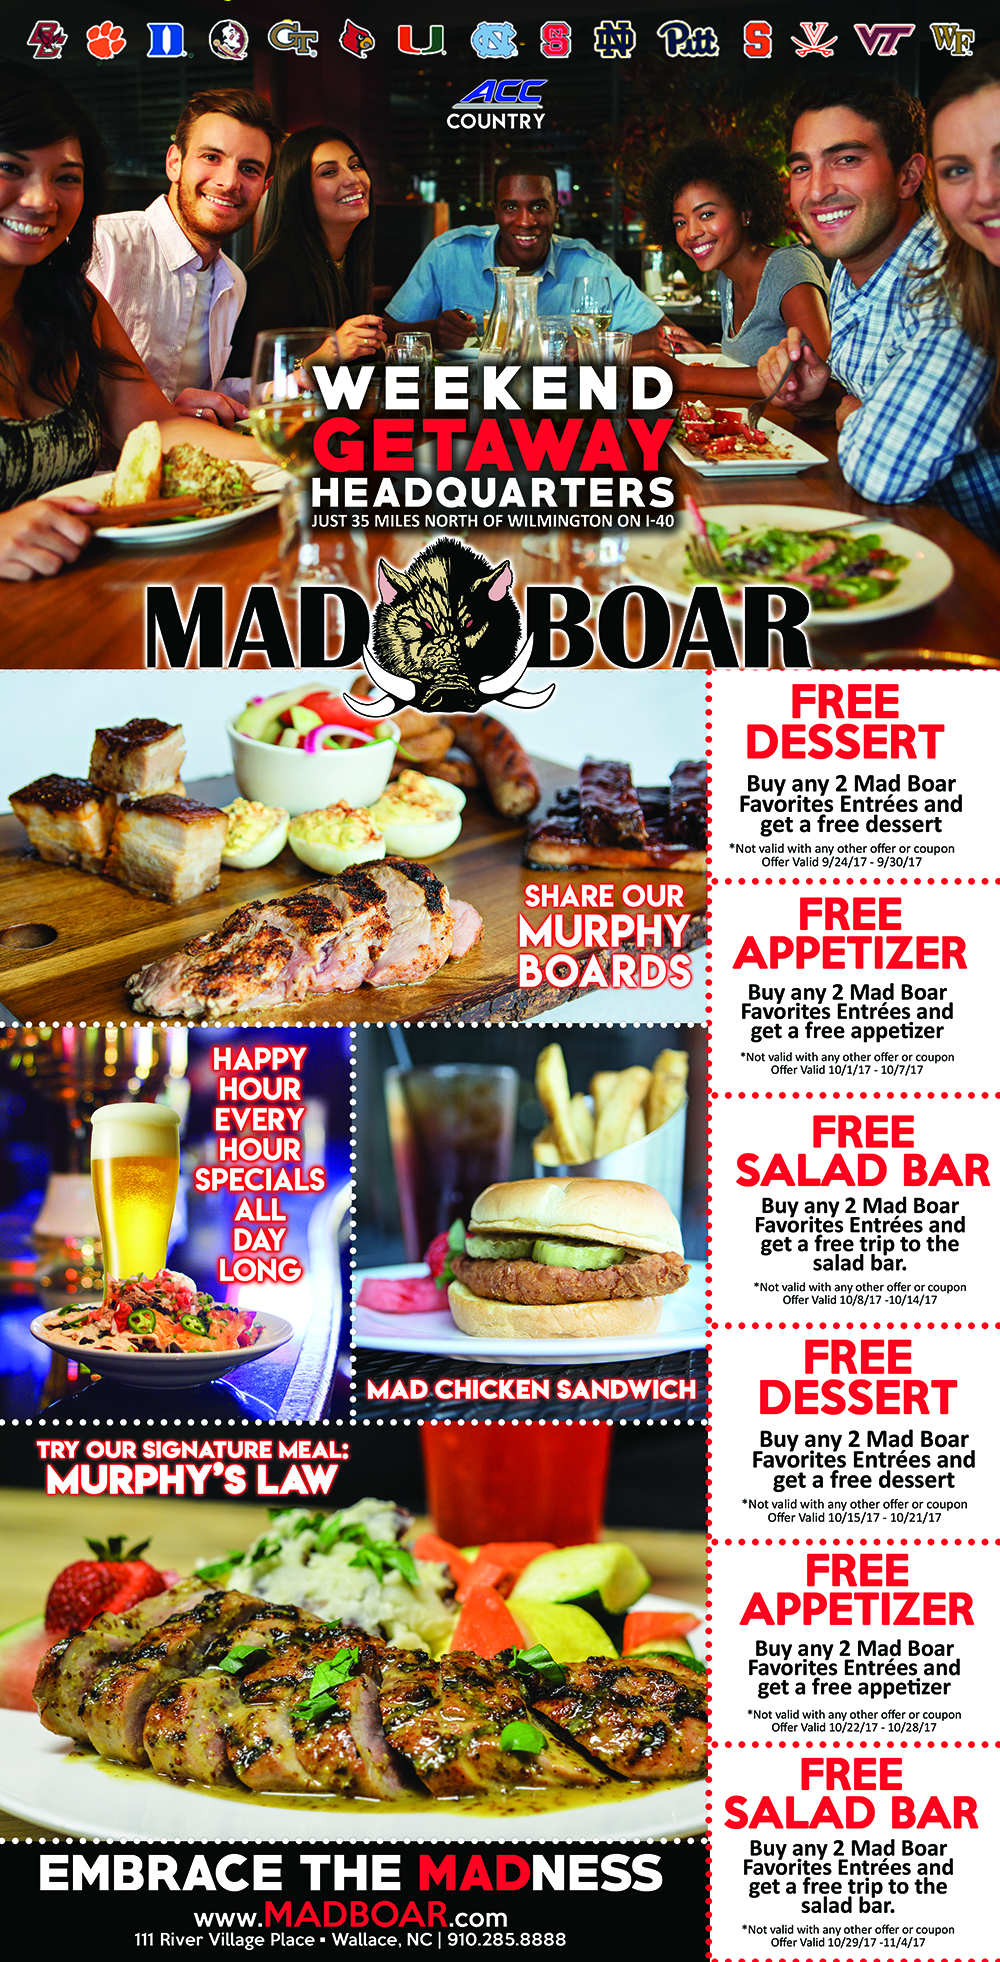 Print out these coupons and bring with you on your next visit to Mad Boar in Wallace!